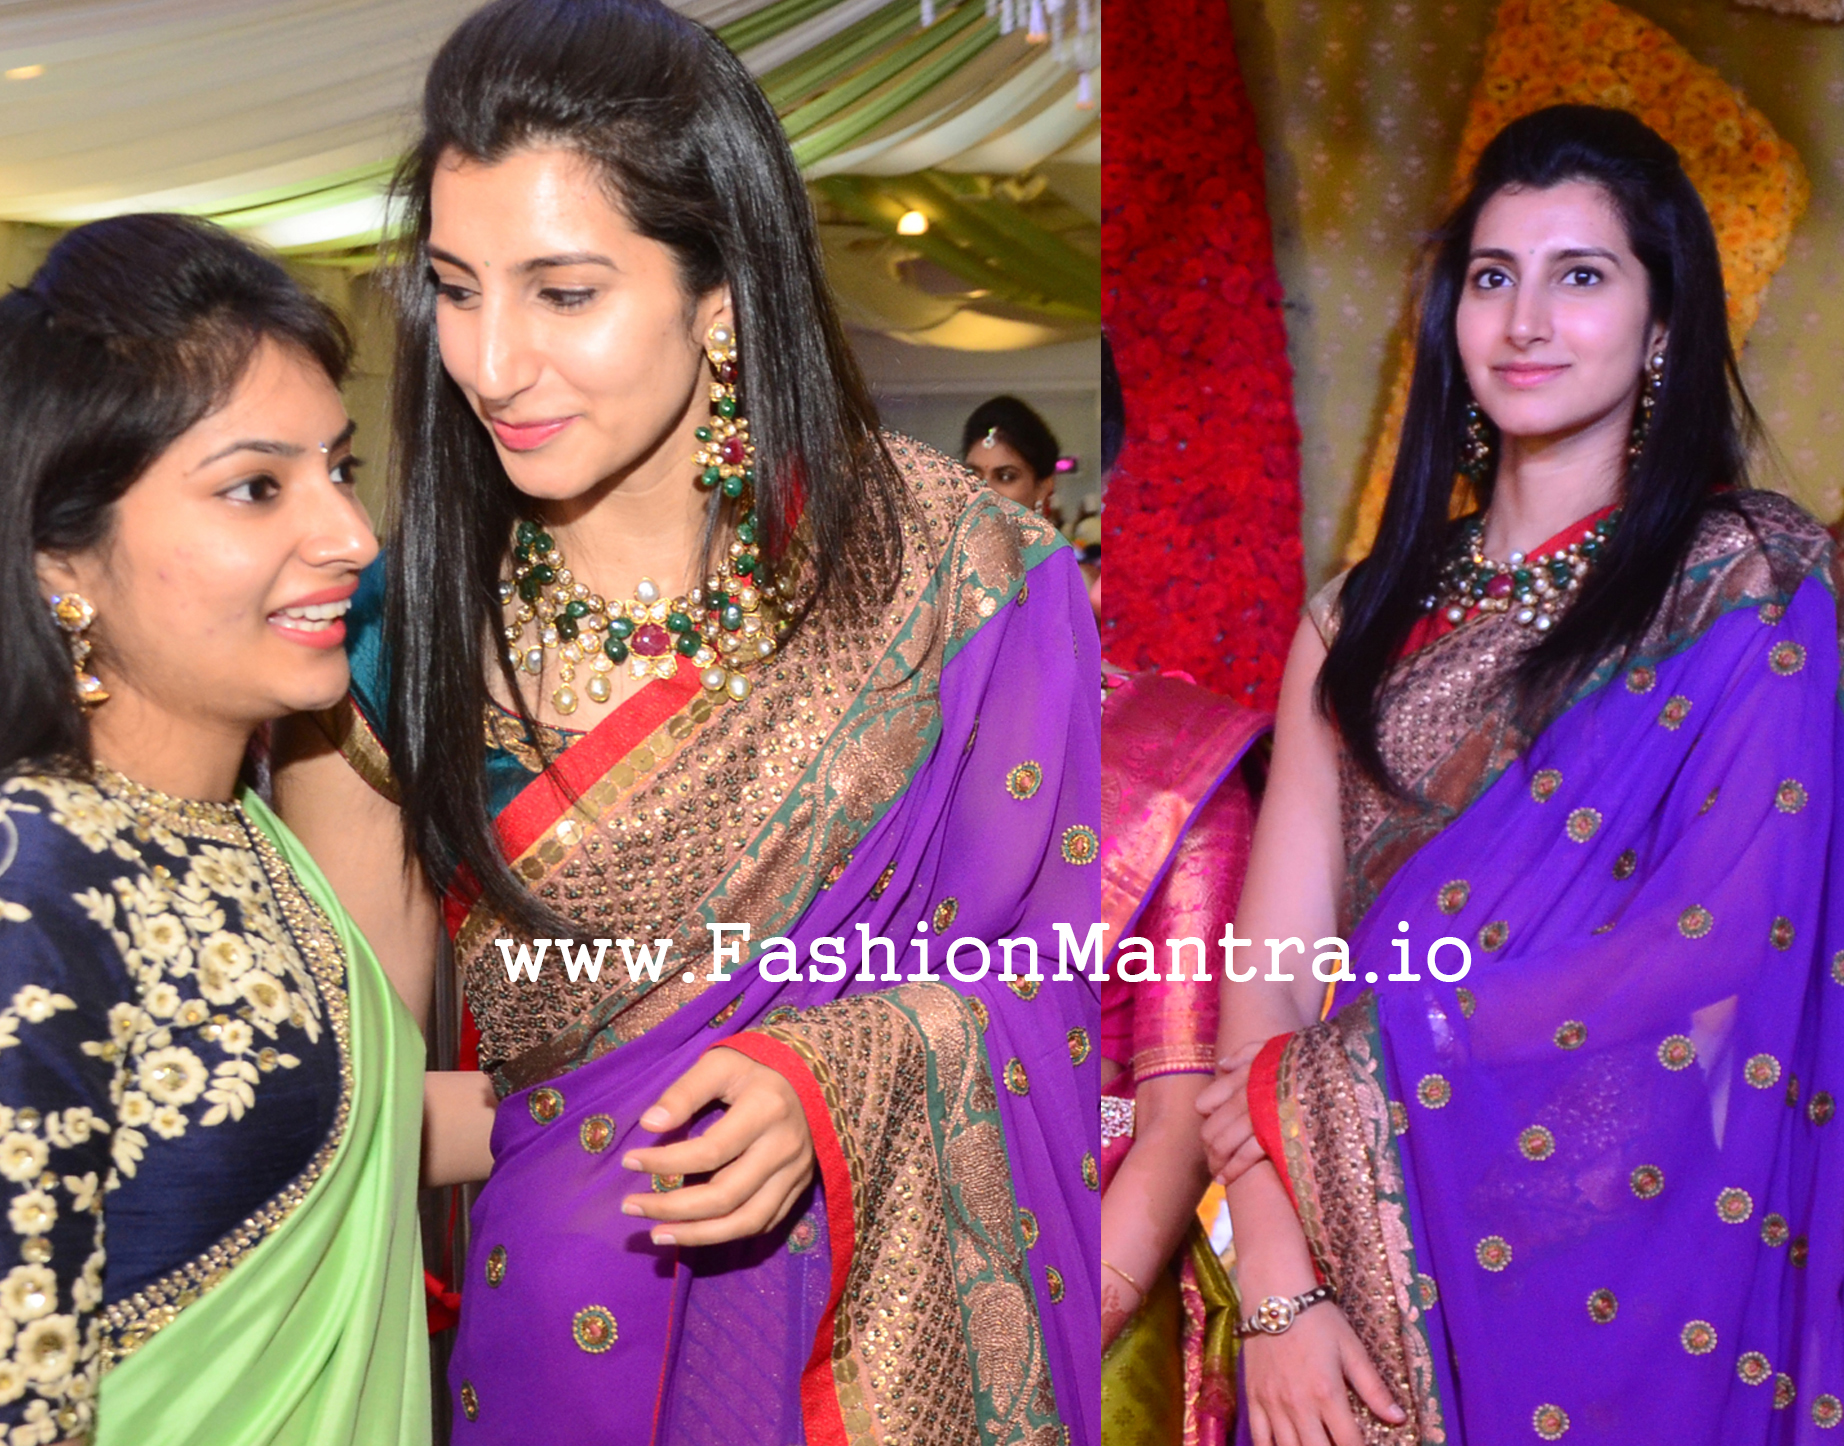 Nara brahmani jewellery photo